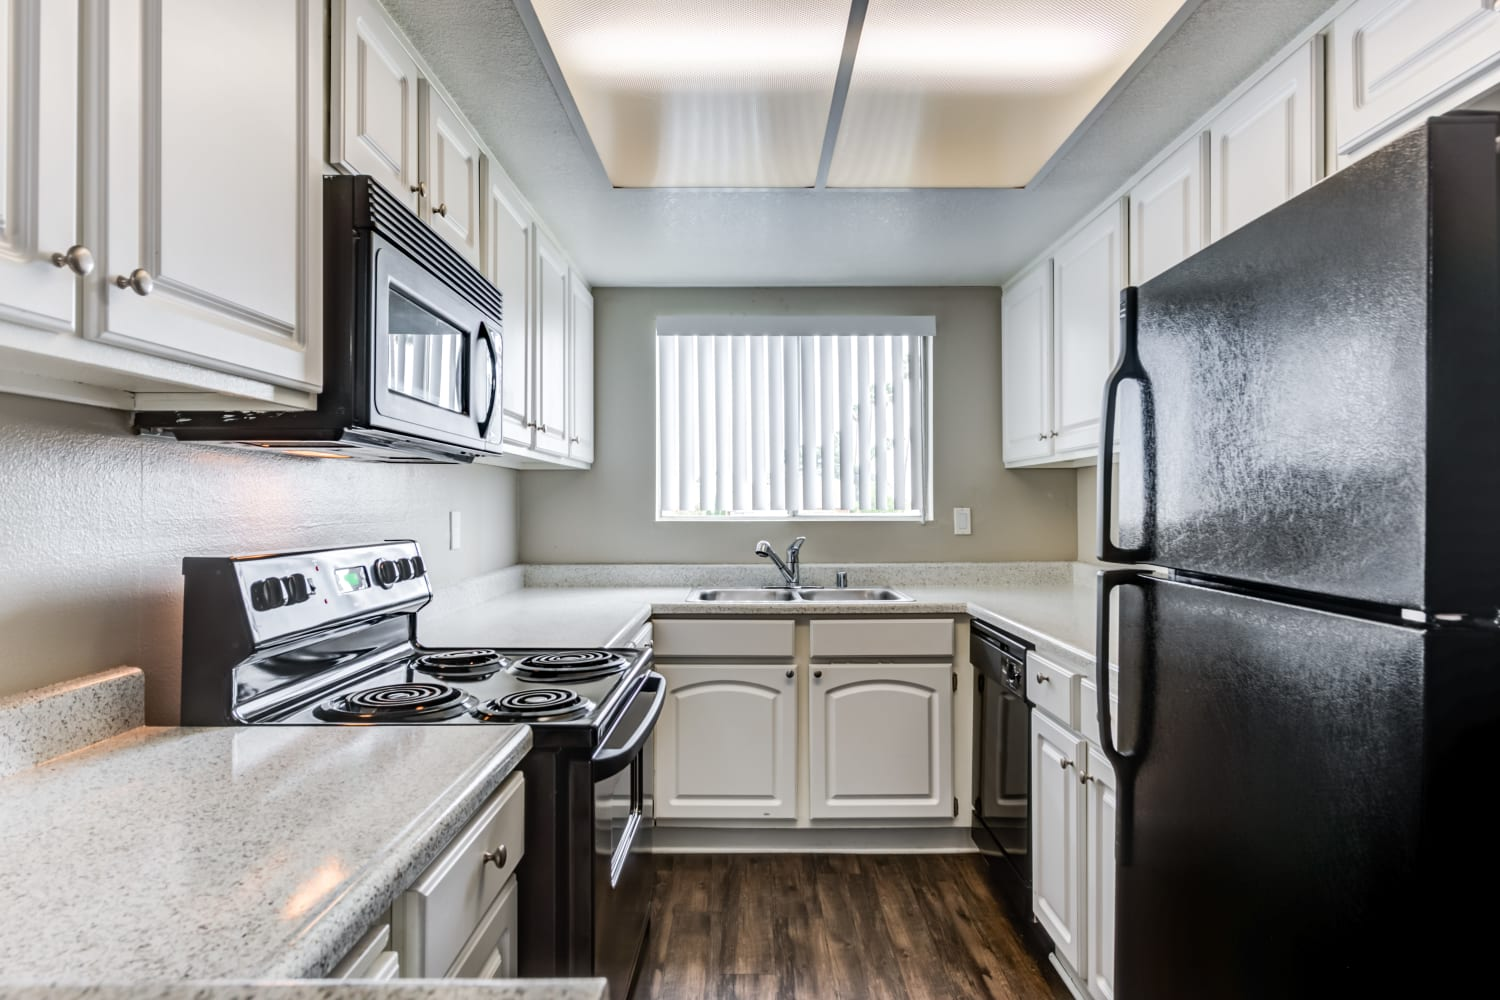 Beautiful Kitchen at Apartments in Glendale, California